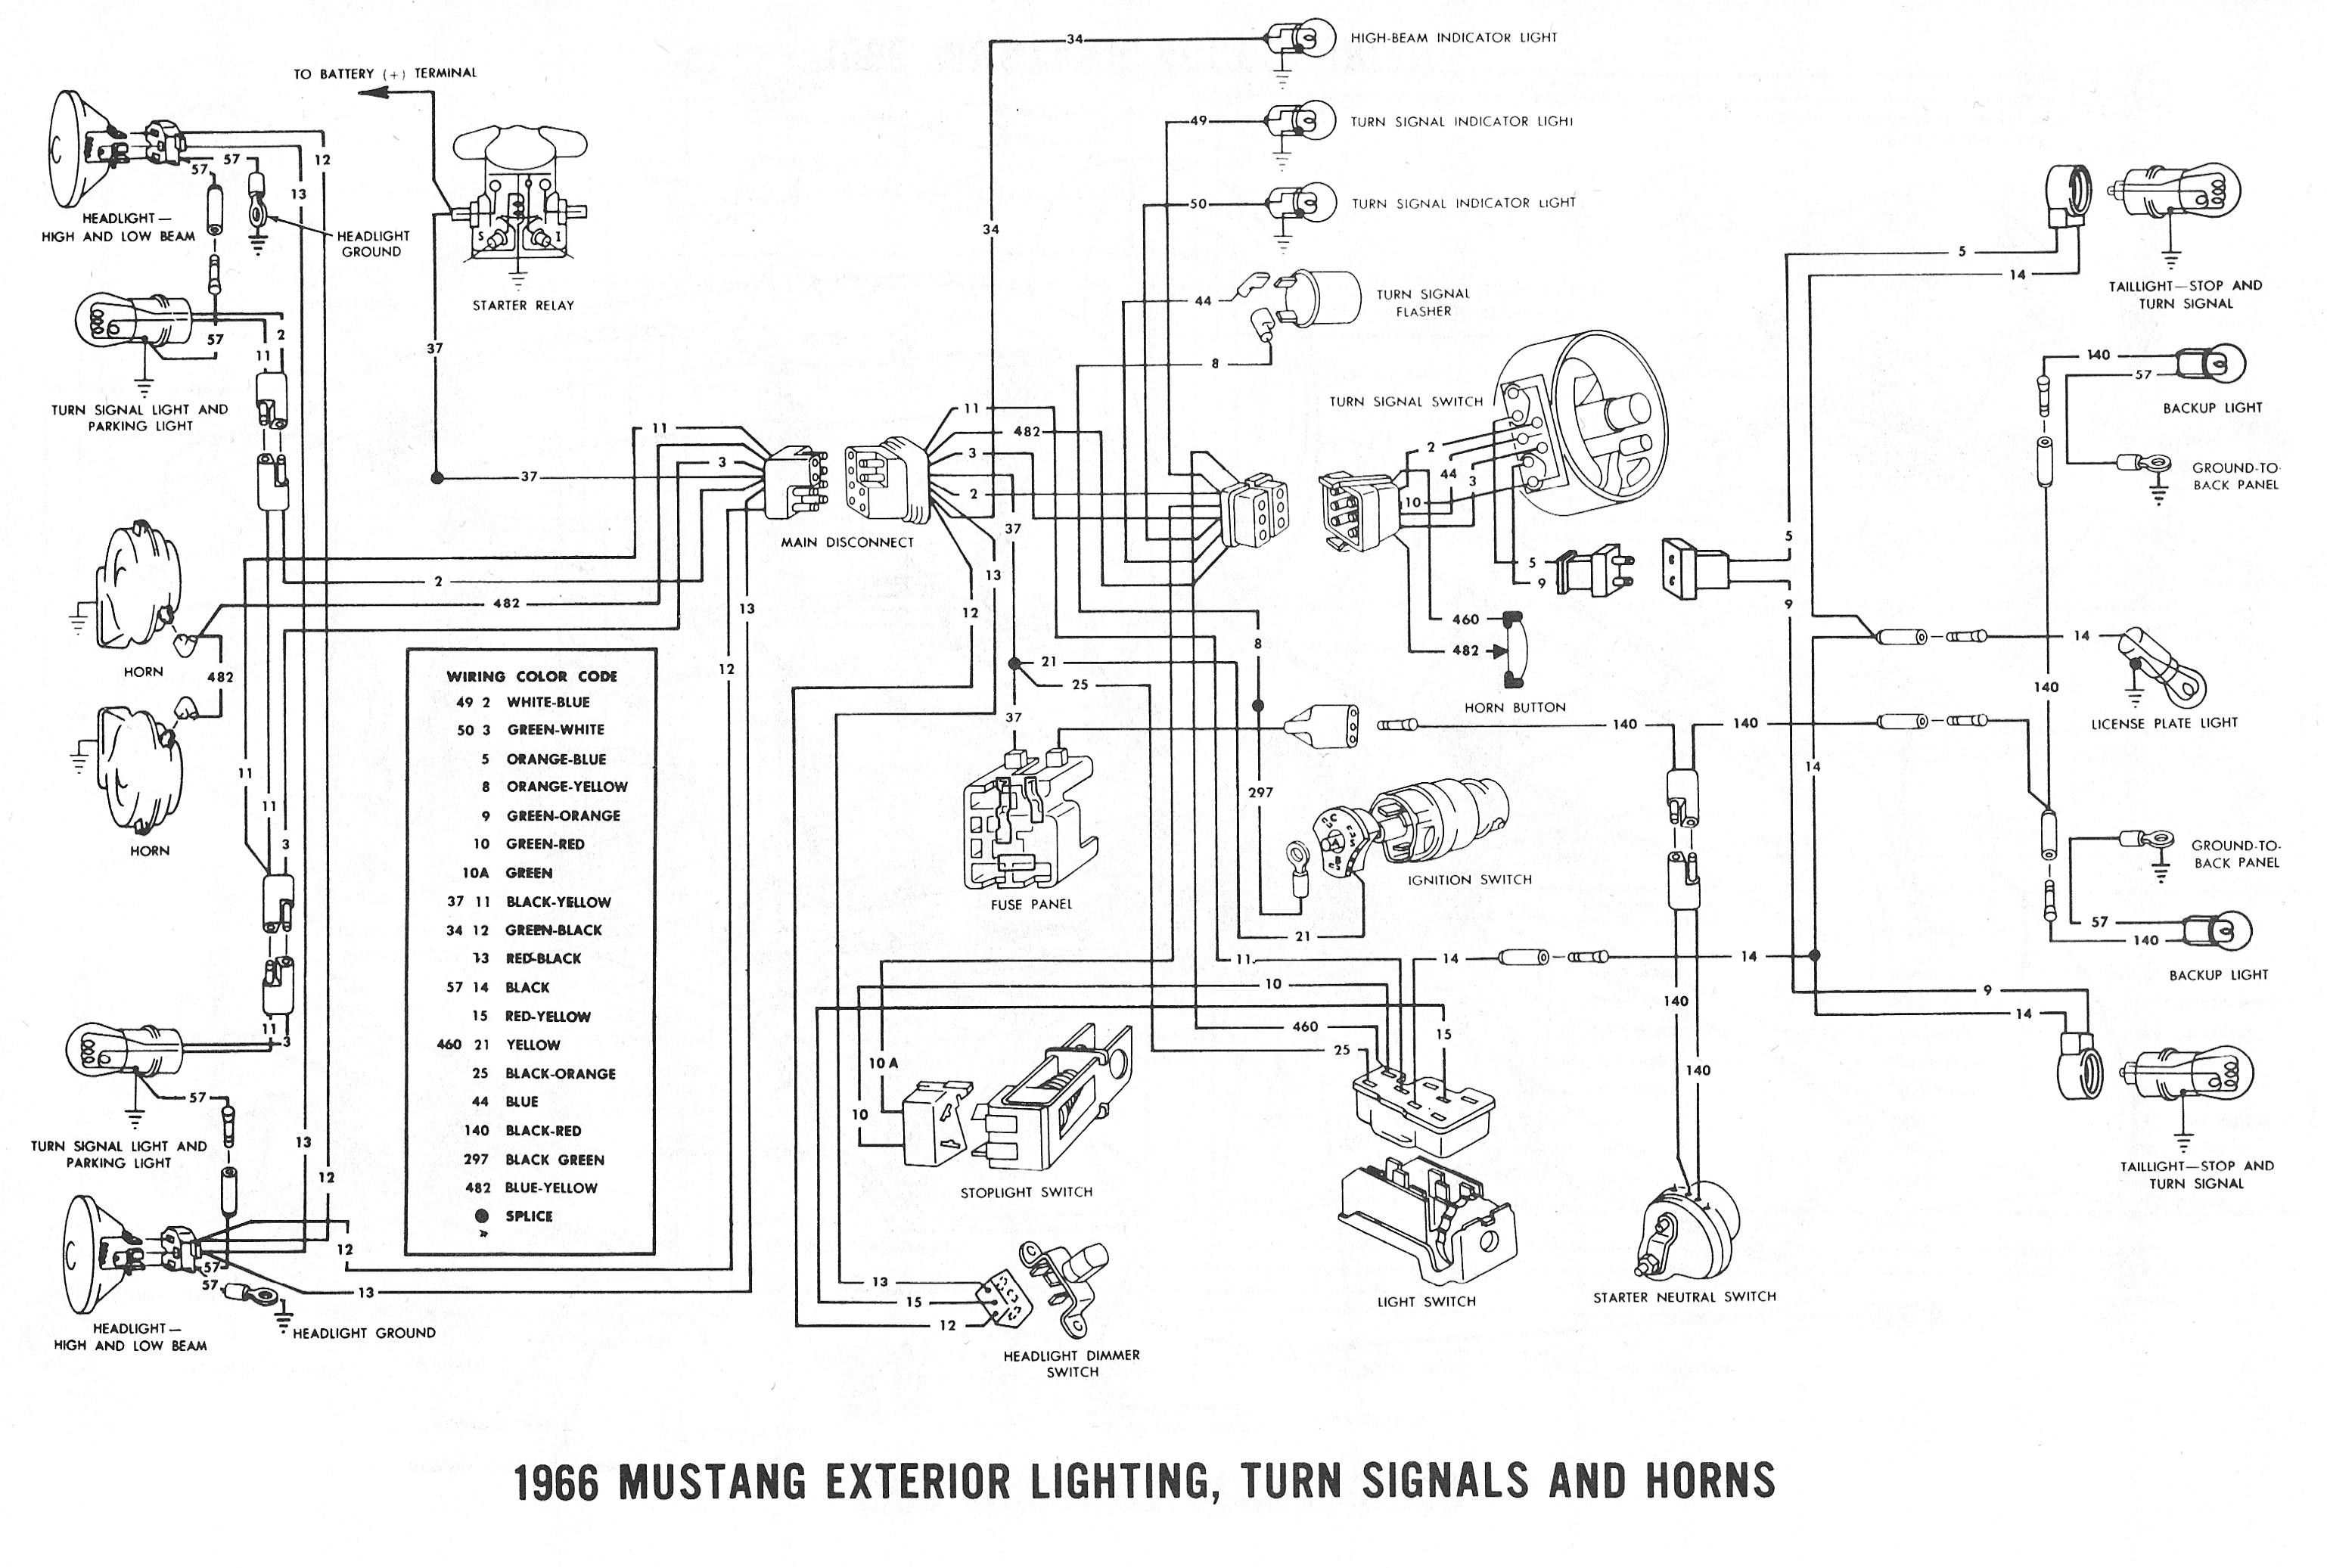 honeywell thermostat rth221 series wiring diagram exit signs series wiring diagram